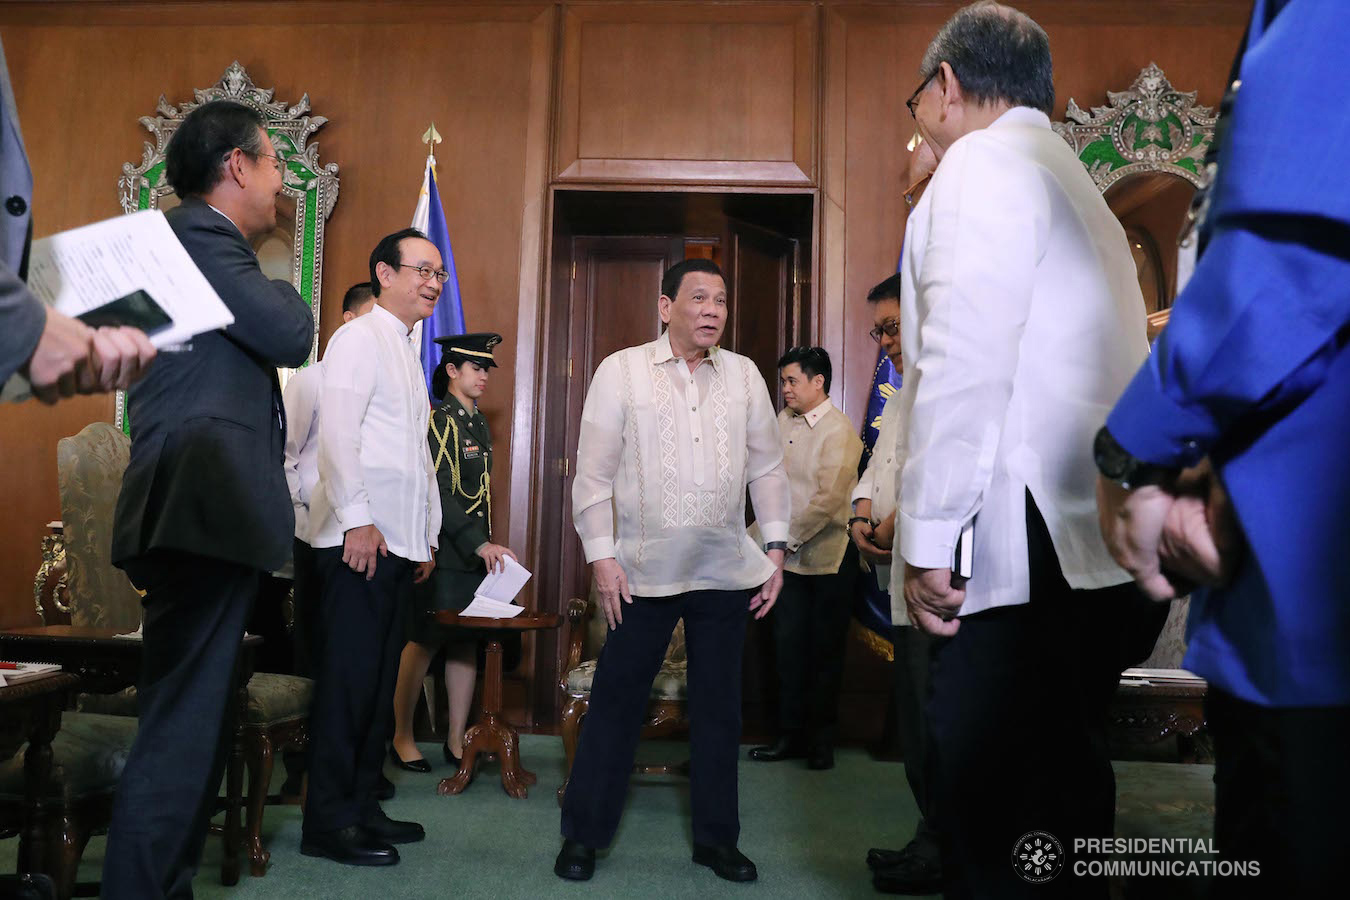 President Rodrigo Roa Duterte shares a light moment with Japanese Ambassador to the Philippines, Koji Haneda, and members of his cabinet during the Japanese Ambassador's courtesy call on the President at the Malacañan Palace on January 21, 2019. ROLANDO MAILO/PRESIDENTIAL PHOTO